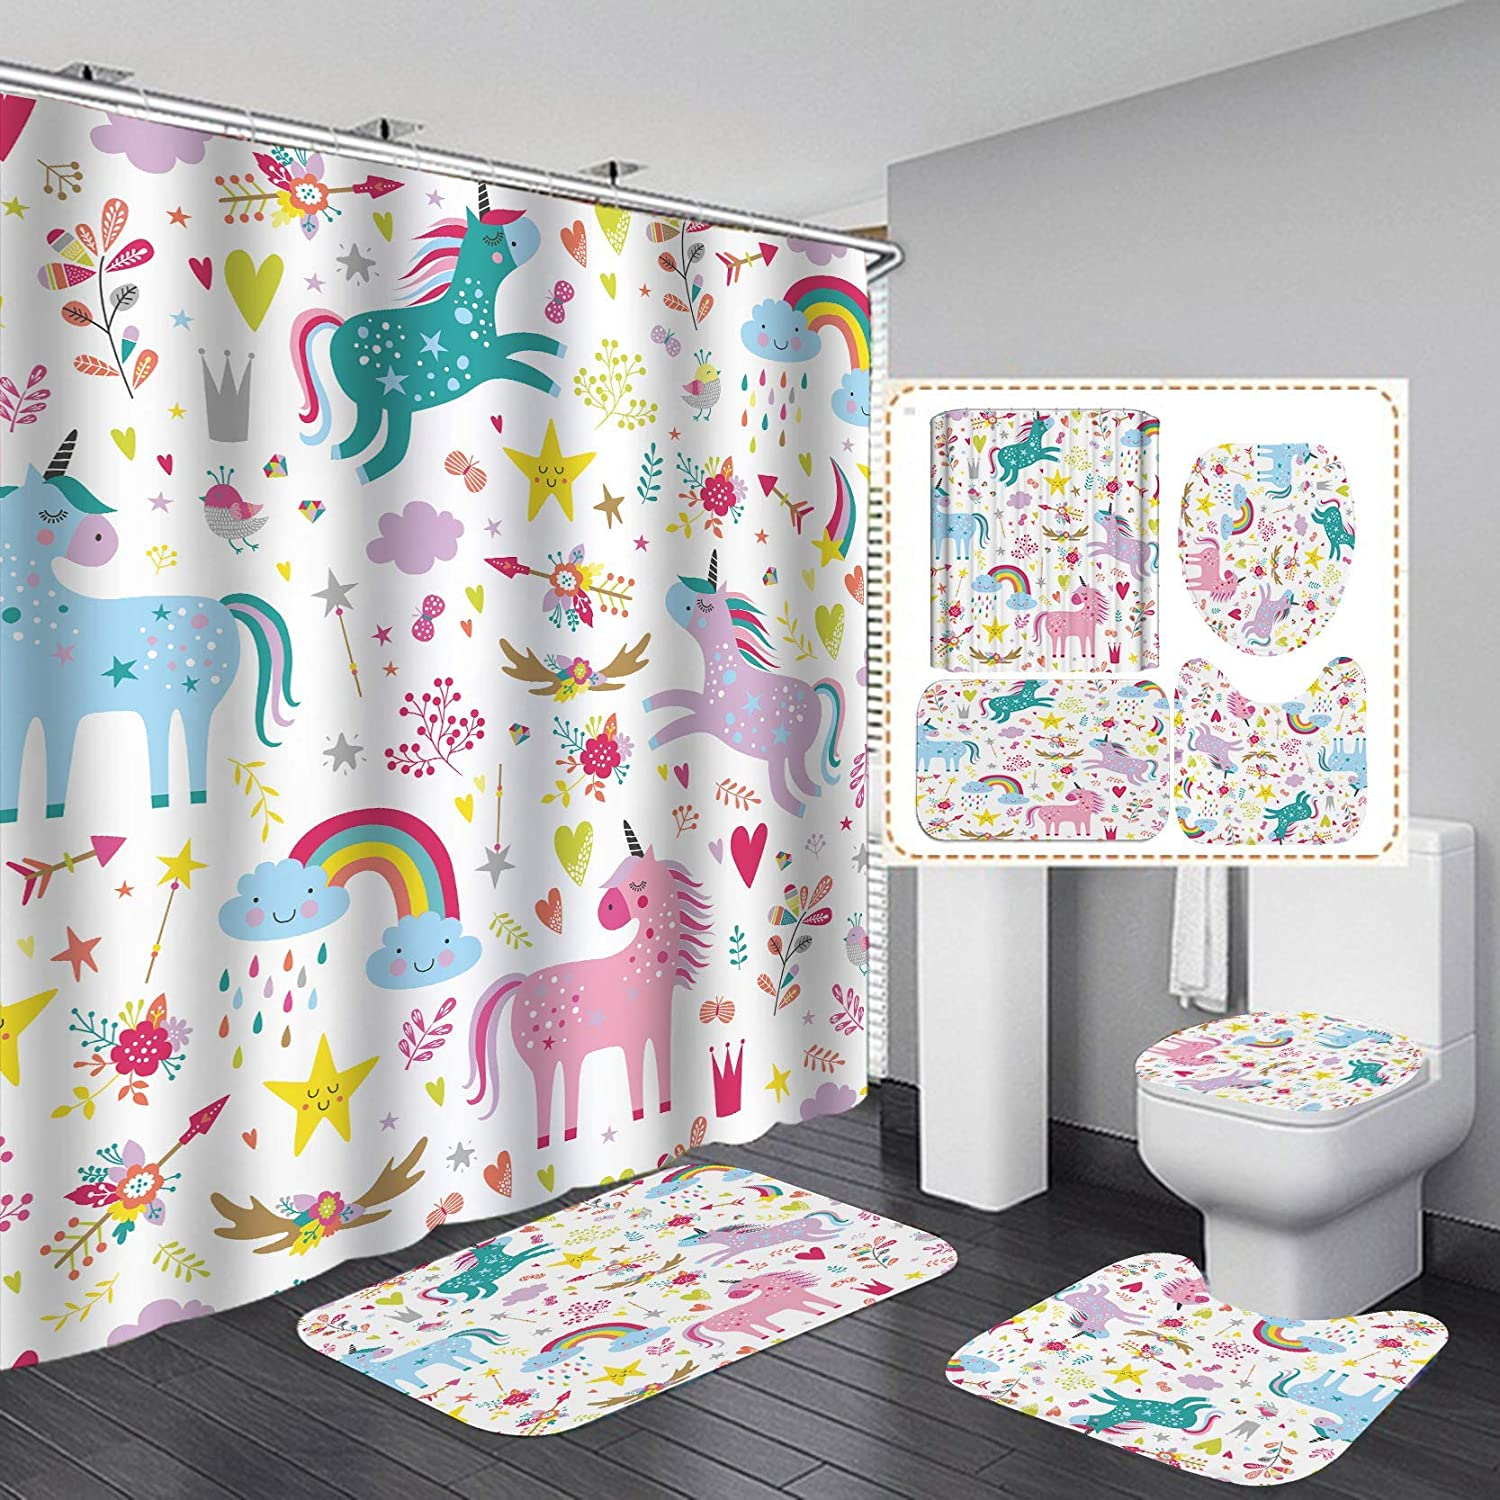 4 PCS Rainbow Unicorn Shower Curtain Sets with Non-Slip Rugs and Toilet Lid Cover Colorful Cute Cartoon Animal Bath Decor Shower Curtains 72